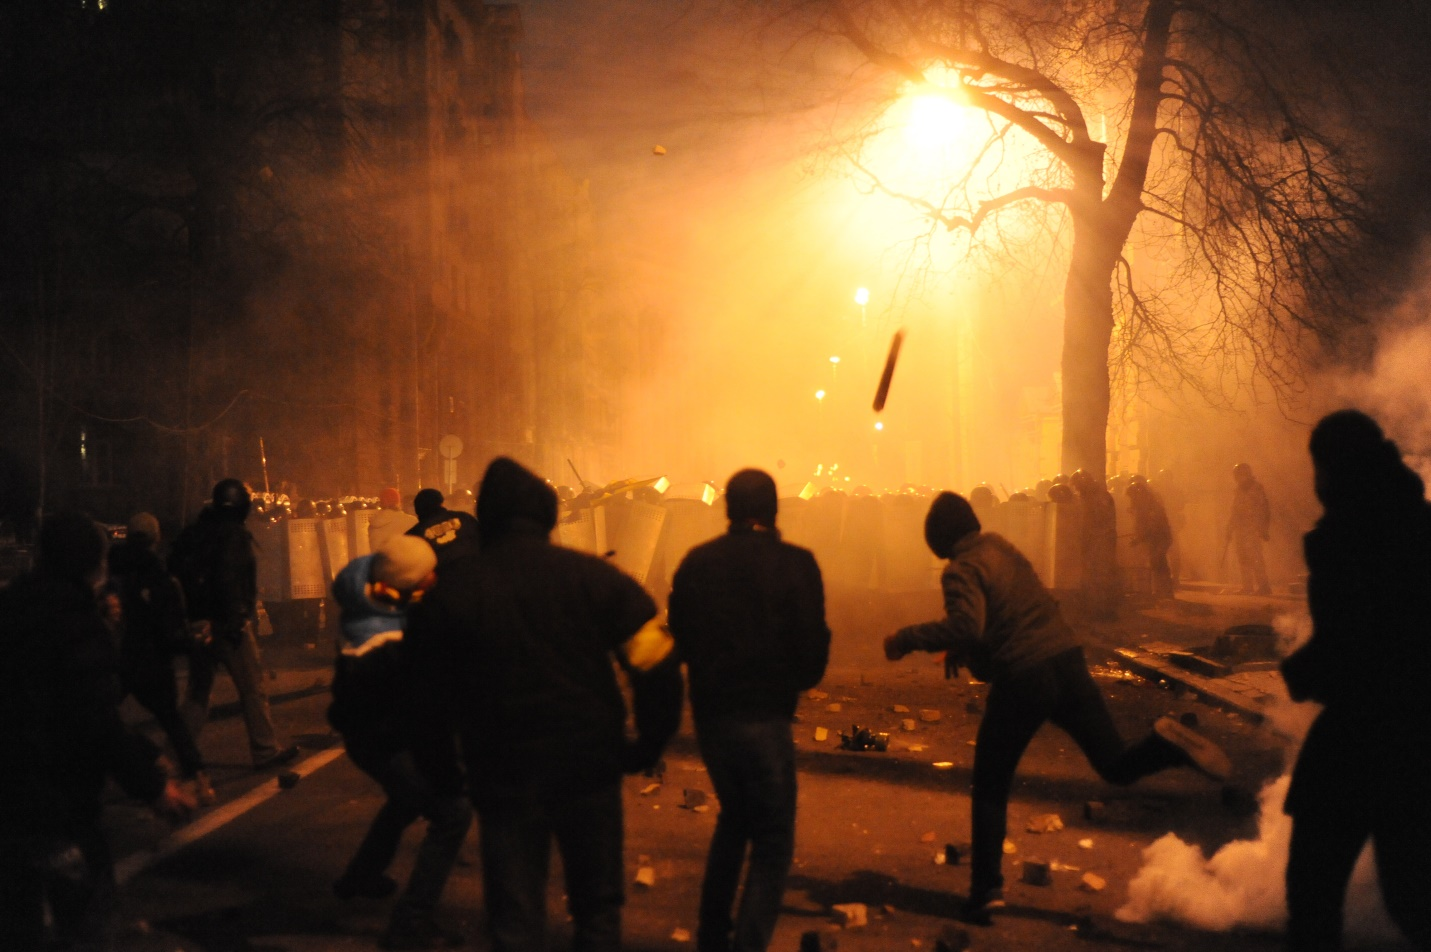 Protestors launch any available projectiles at walls of riot police on a smoky January night in Ukraine. (Wikimedia Commons)